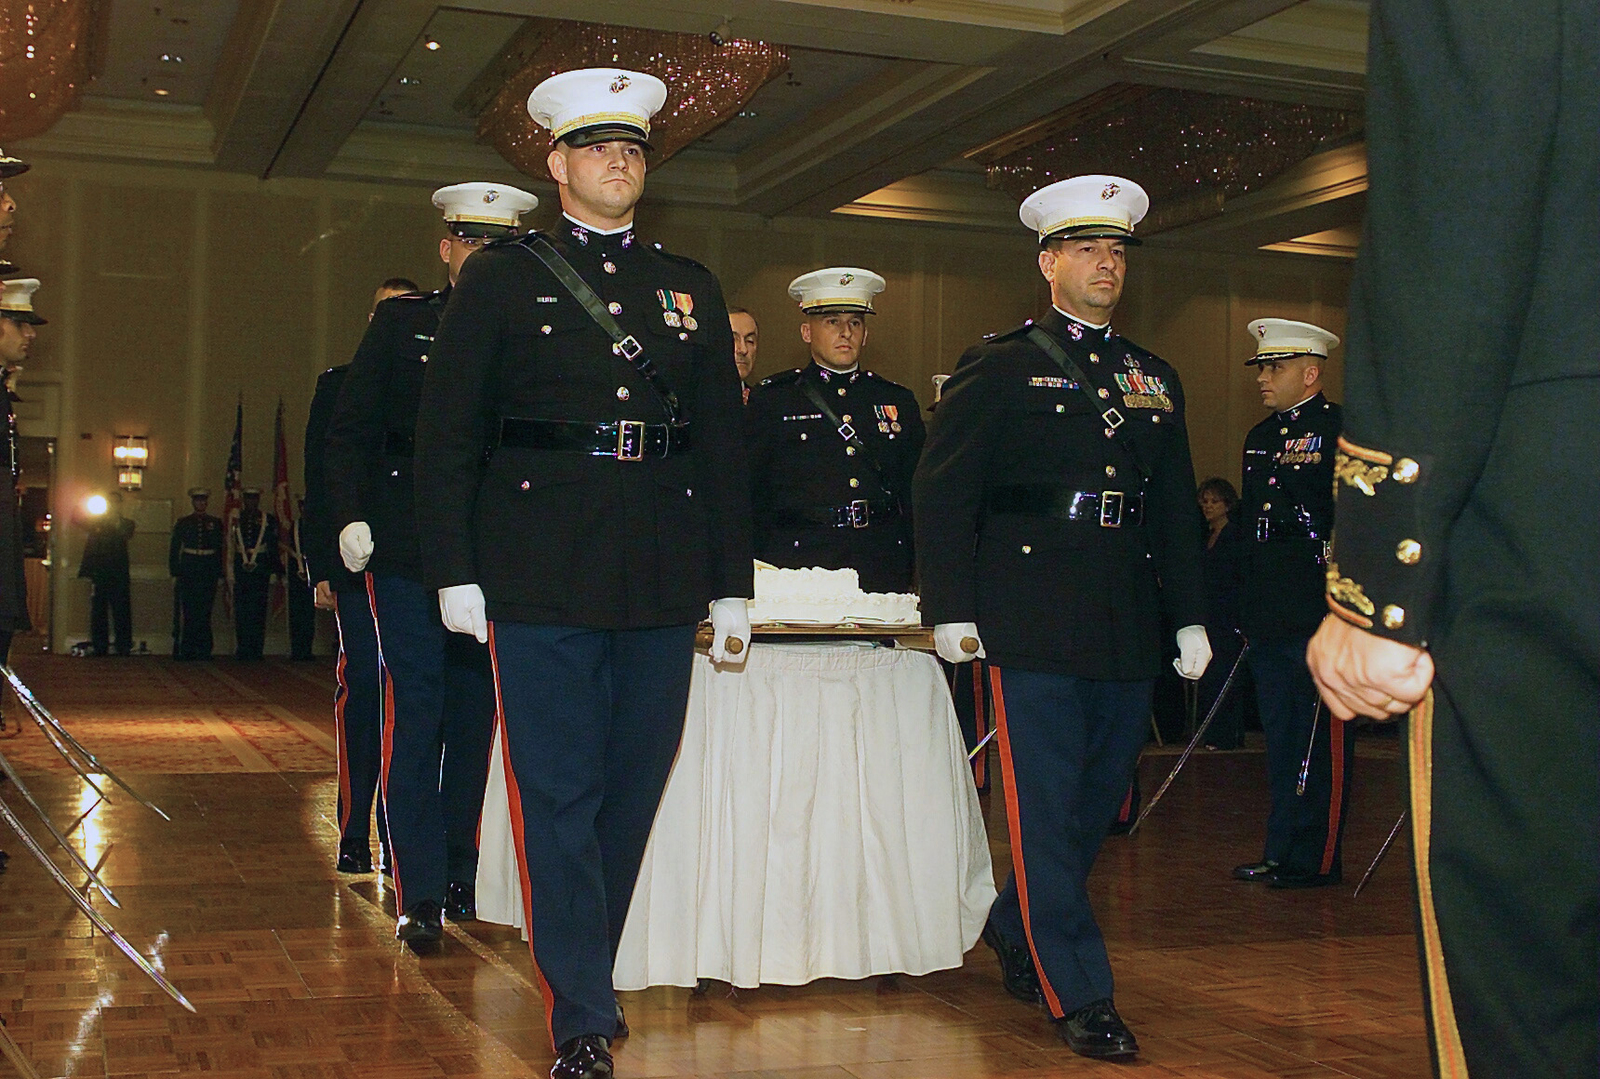 US Marine Corps (USMC) Officers of Marine Corps Combat Development Command (MCCDC) transport the cake for the 228th Birthday of the United States Marine Corps through an honor gauntlet at the Hilton in Alexandria, Virginia (VA)